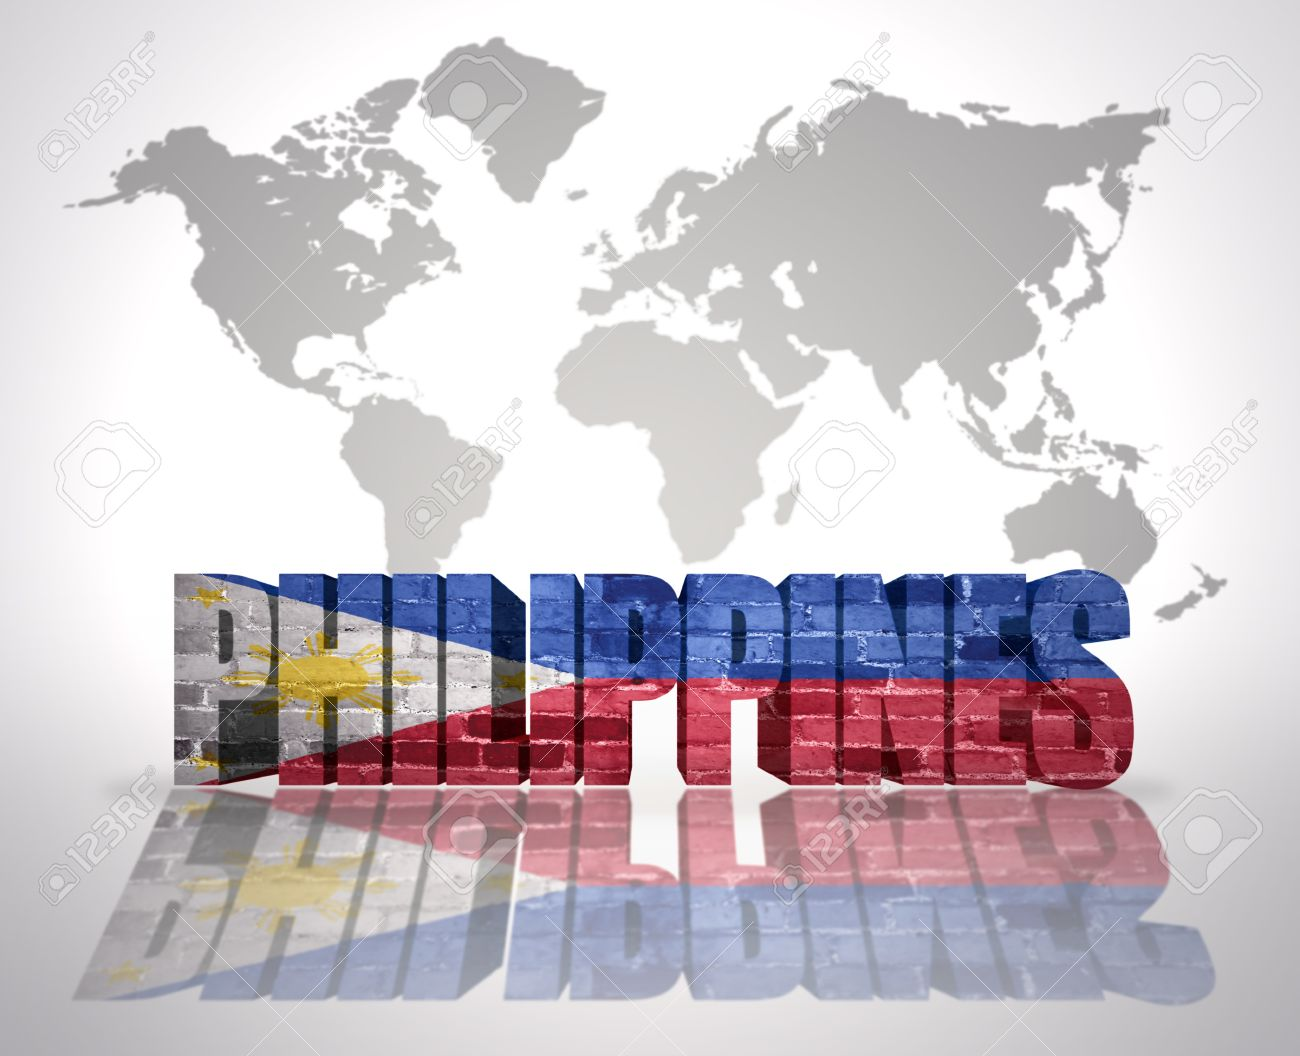 Word philippines with philippine flag on a world map background stock photo word philippines with philippine flag on a world map background gumiabroncs Images